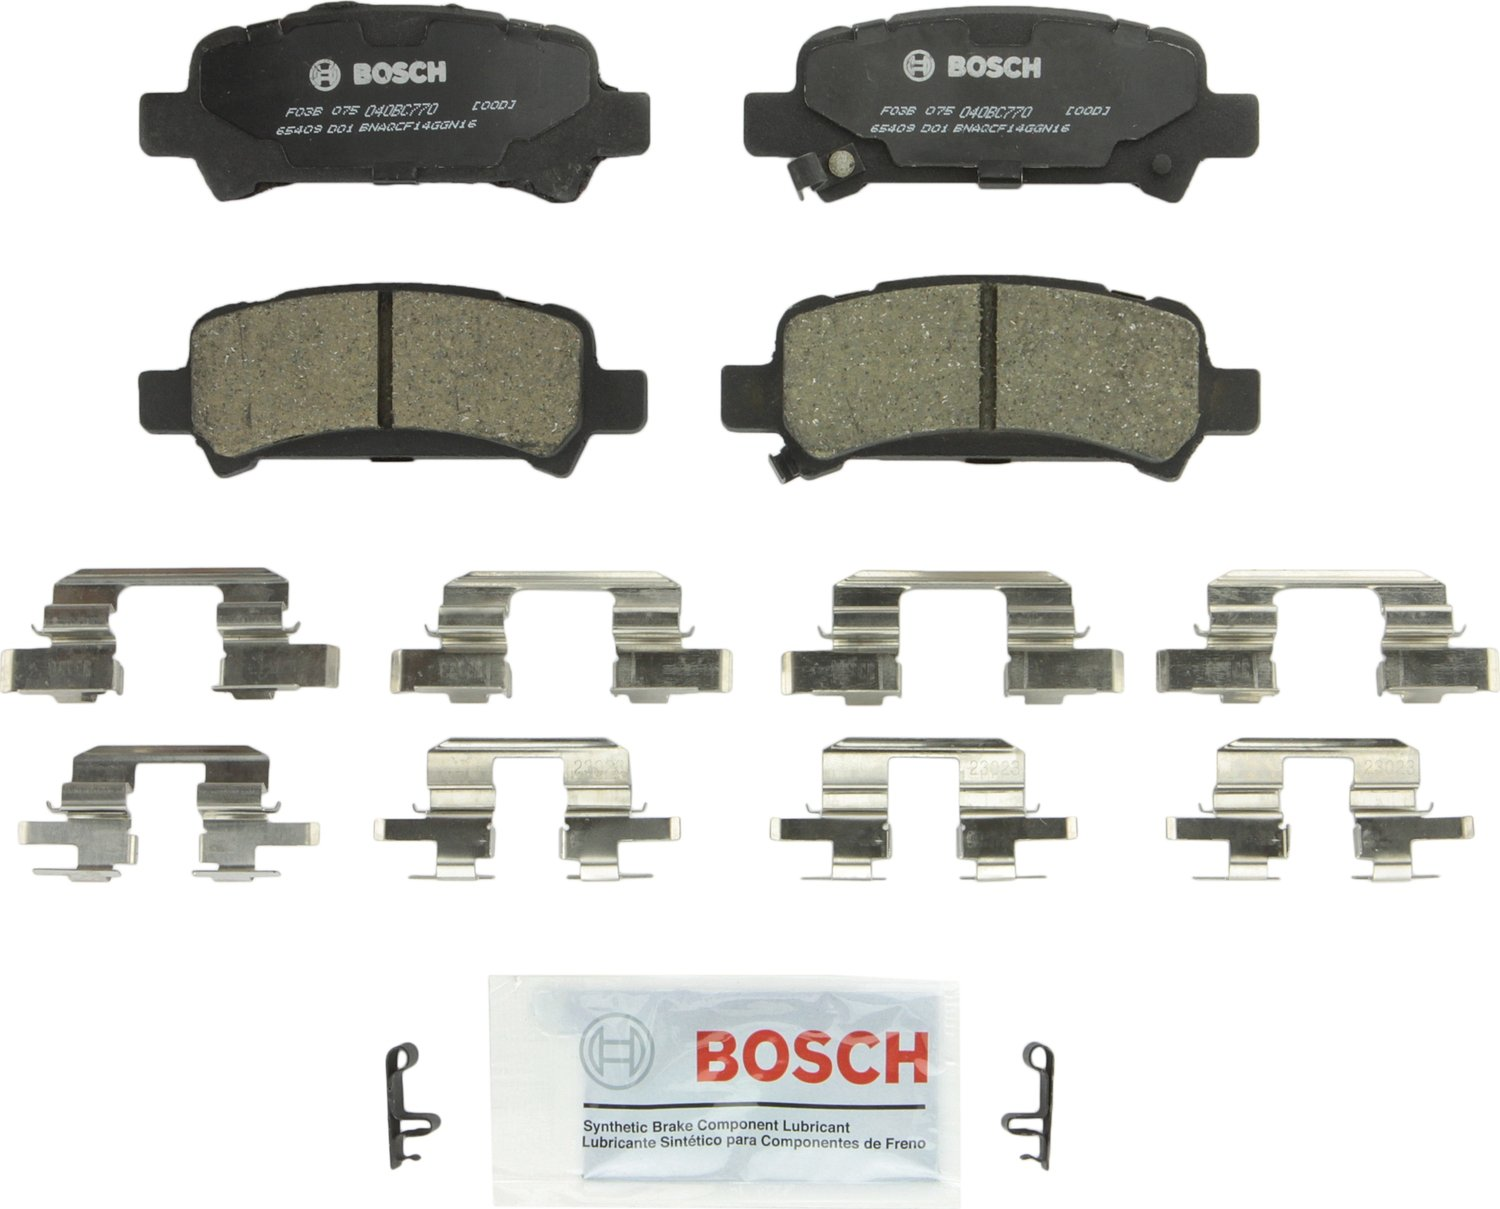 Bosch BC770 QuietCast Brake Pad Set